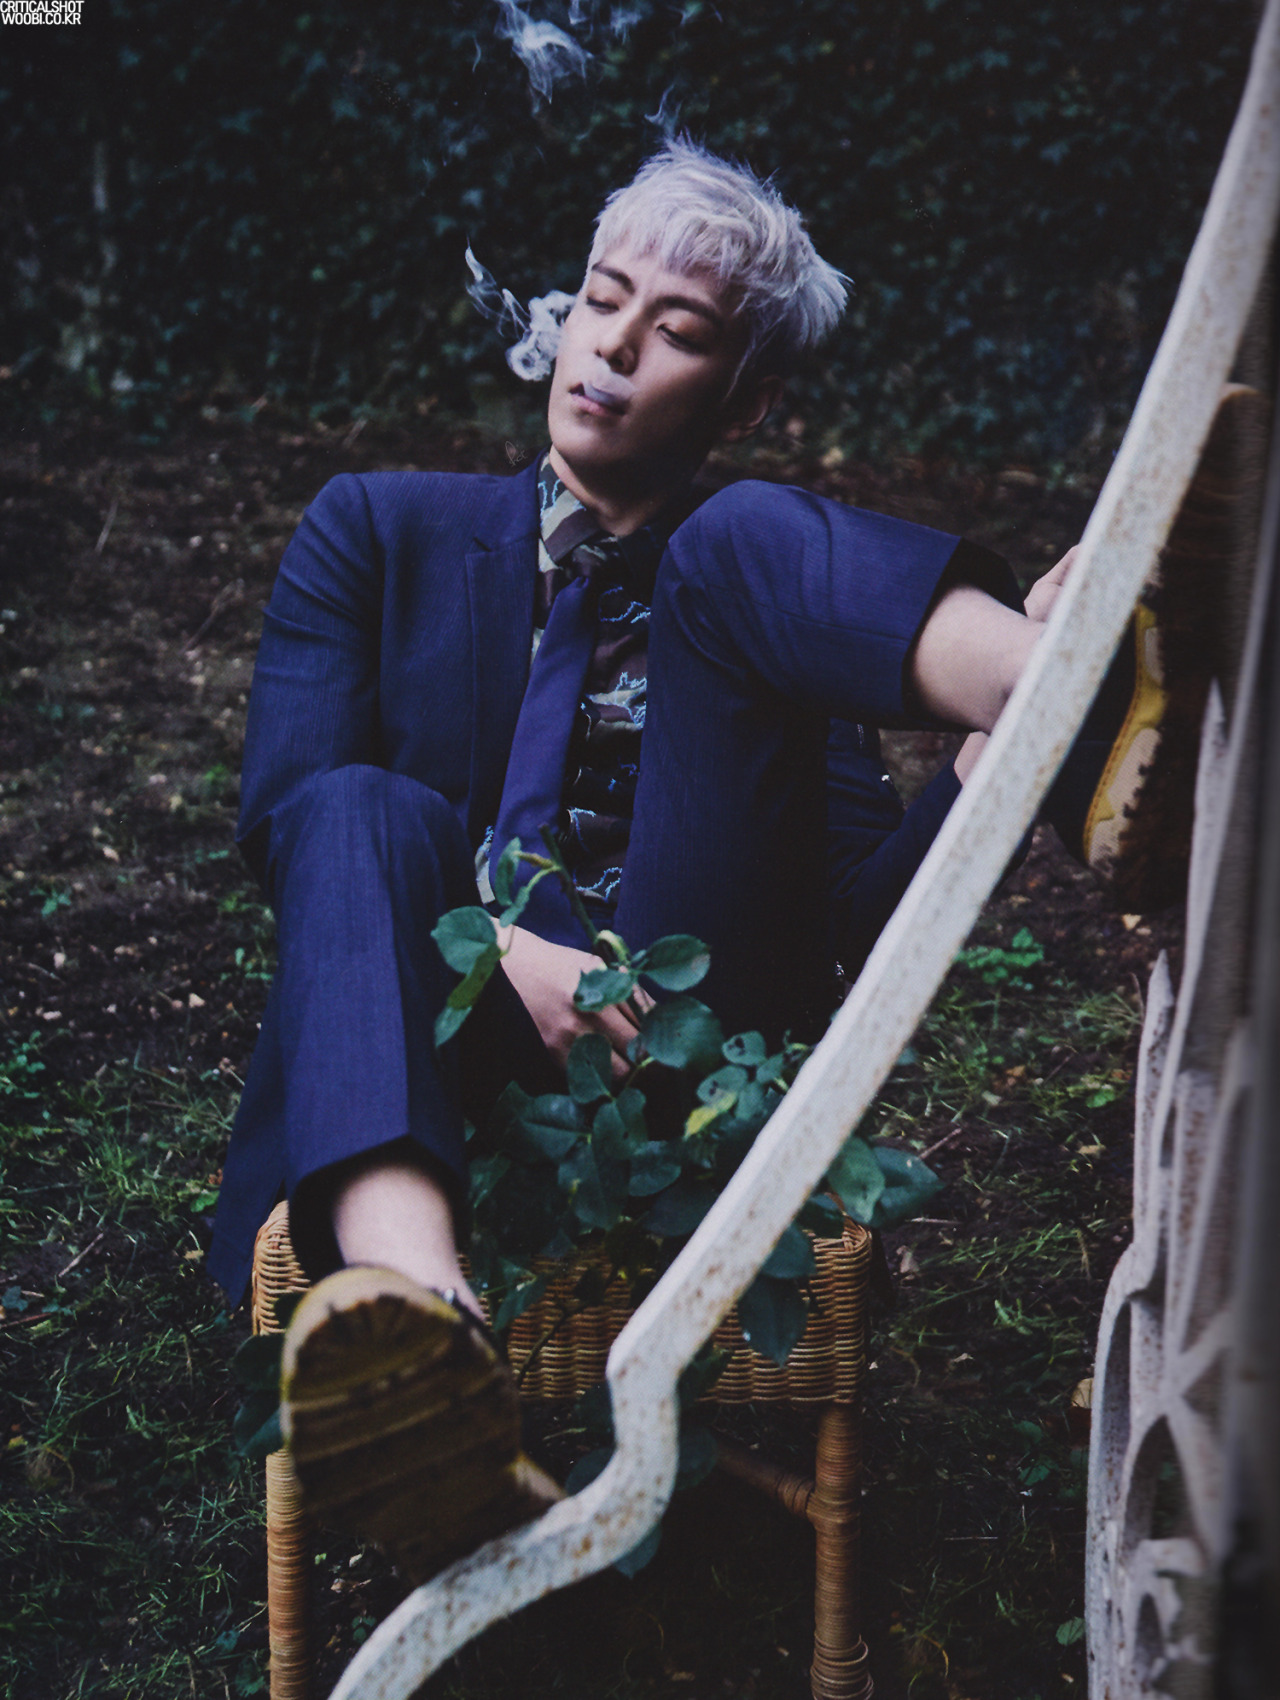 TOP Arena Homme March 2016 scans by CriticalShot (7).png